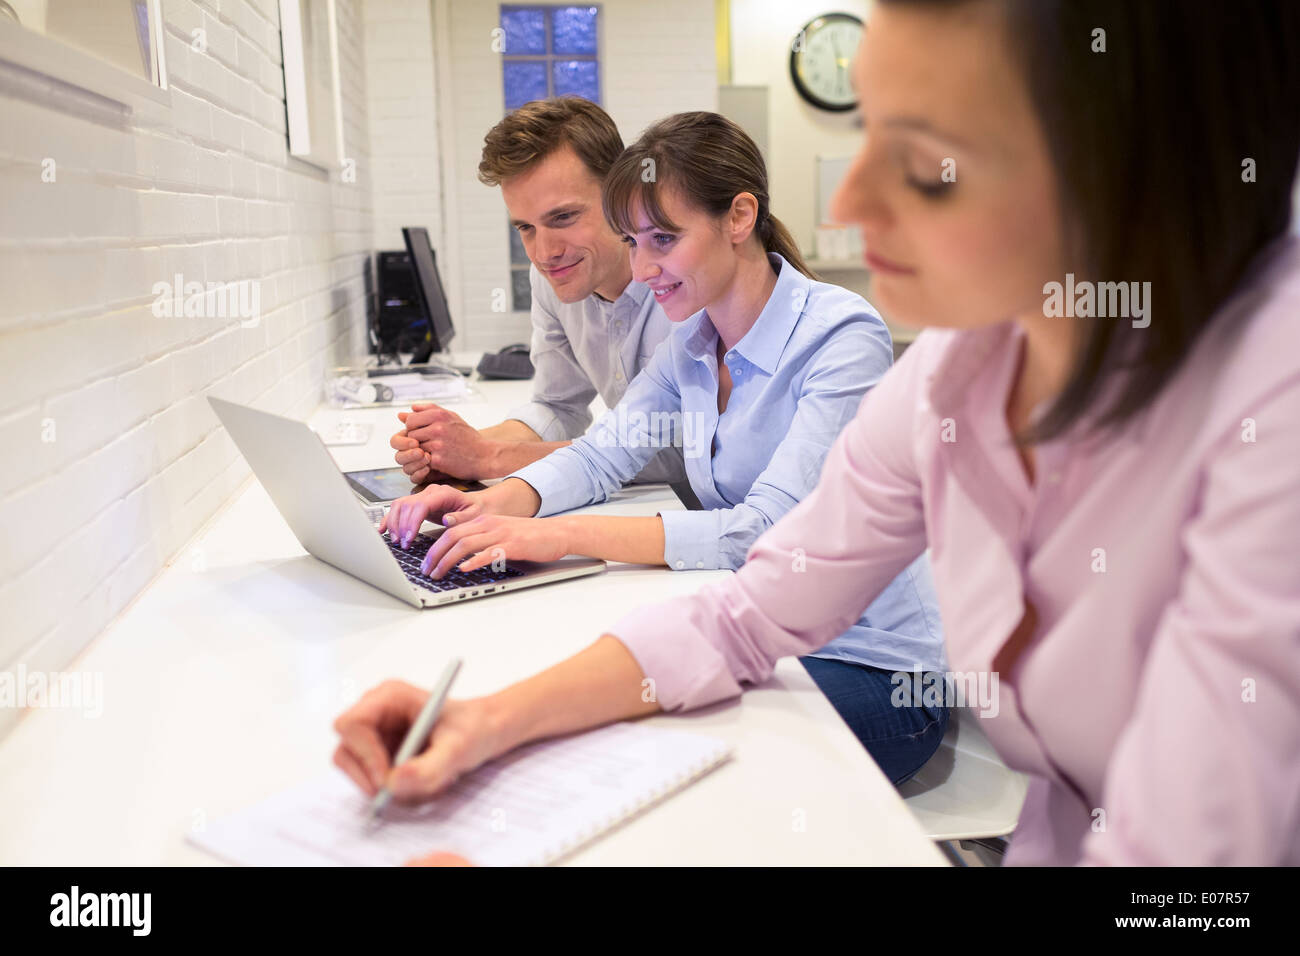 Business man woman colleagues computer startup coworking casual students - Stock Image